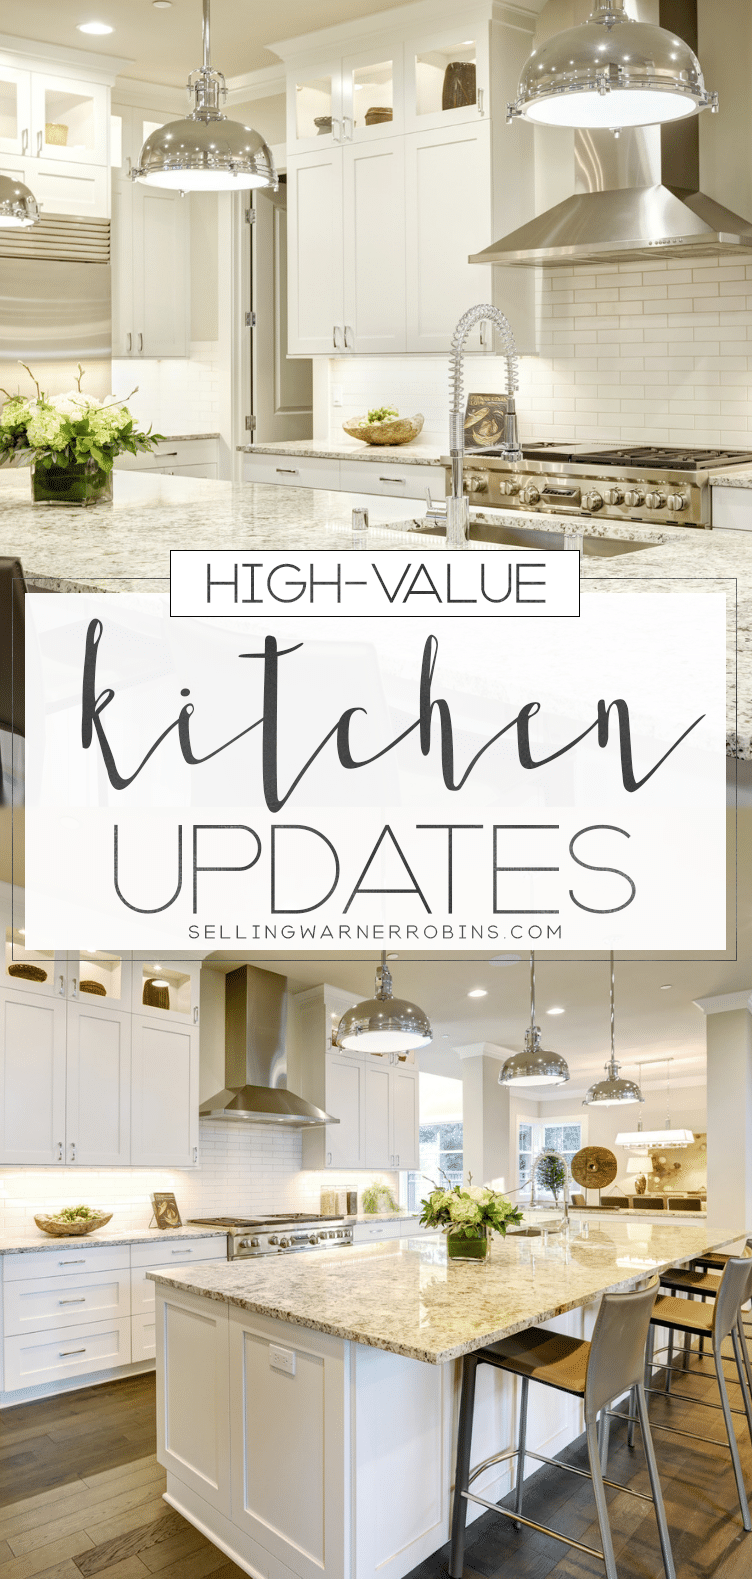 High-Value Kitchen Updates